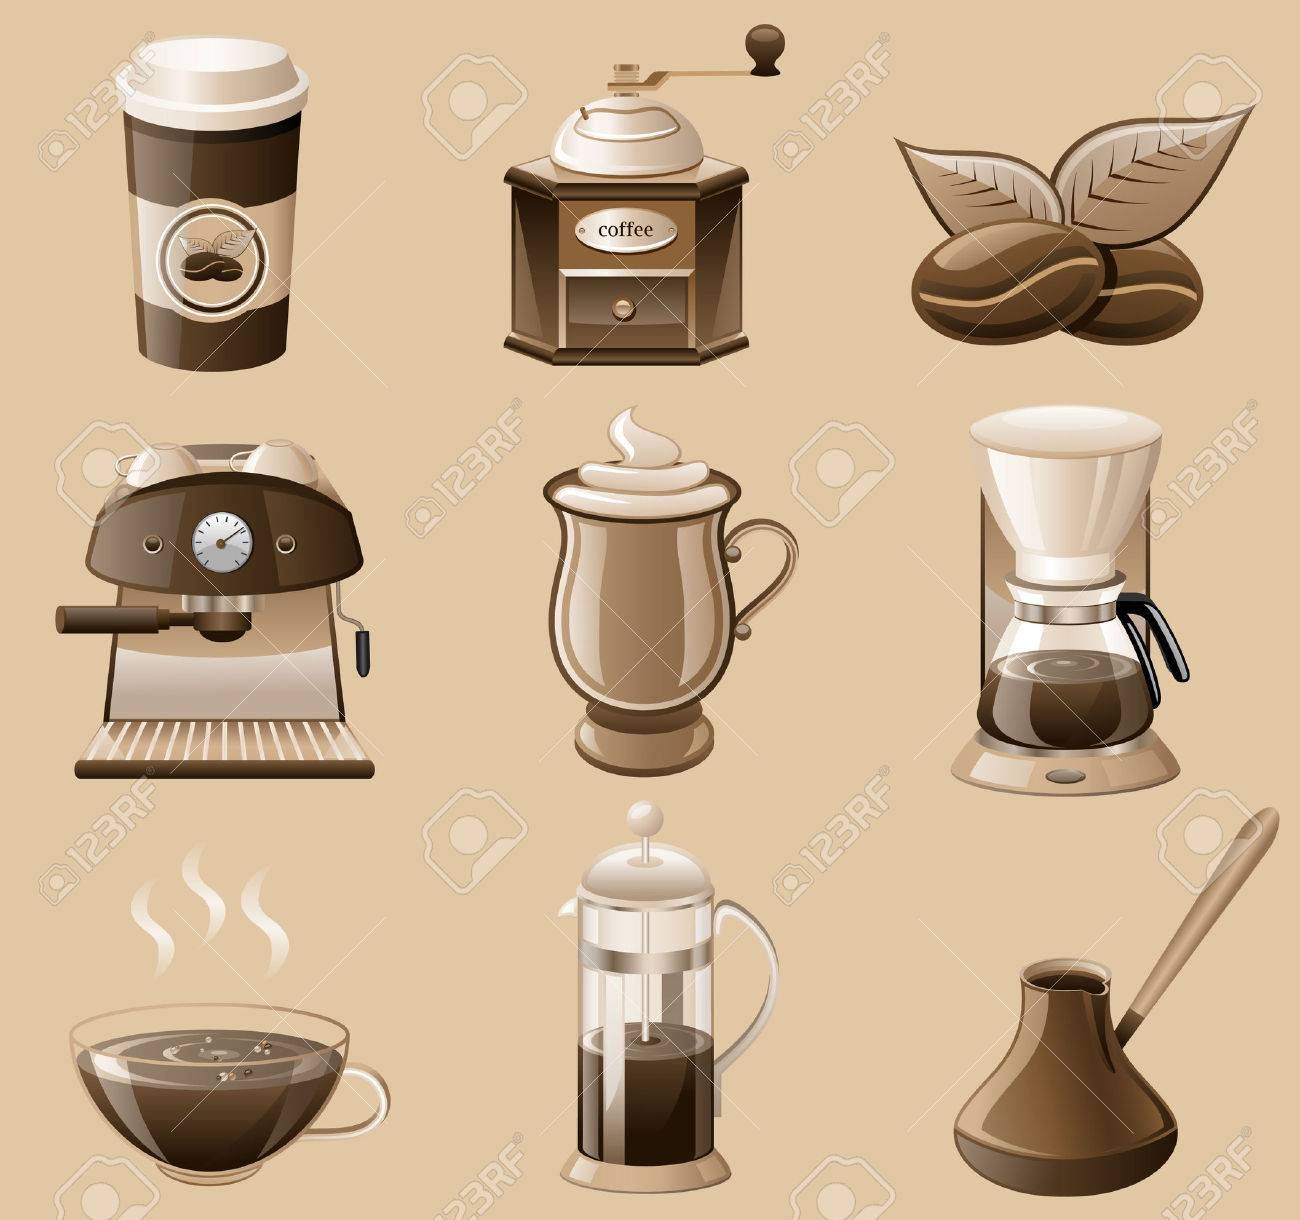 coffee icon set isolated on brown background. Stock Vector - 8805320